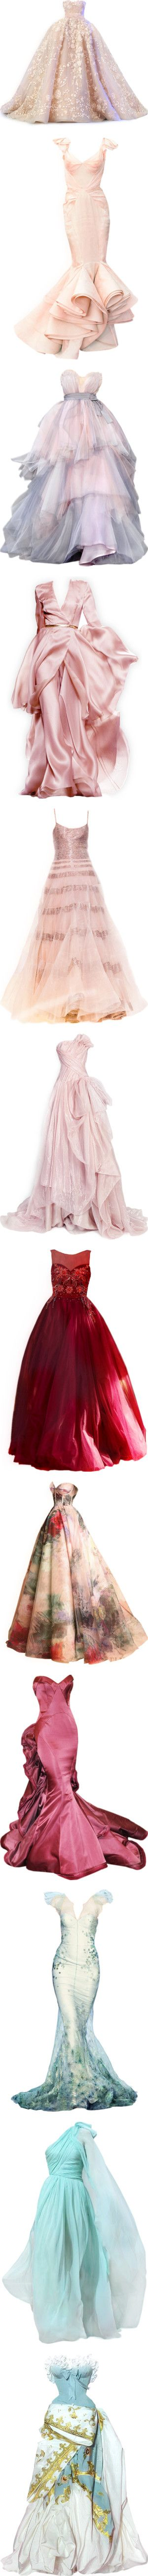 Dream gowns by satinee on Polyvore featuring dresses, gowns, vestidos, long dress, pink ball gown, long pink dress, pink dress, elie saab evening dresses, elie saab dresses and long dresses jαɢlαdy